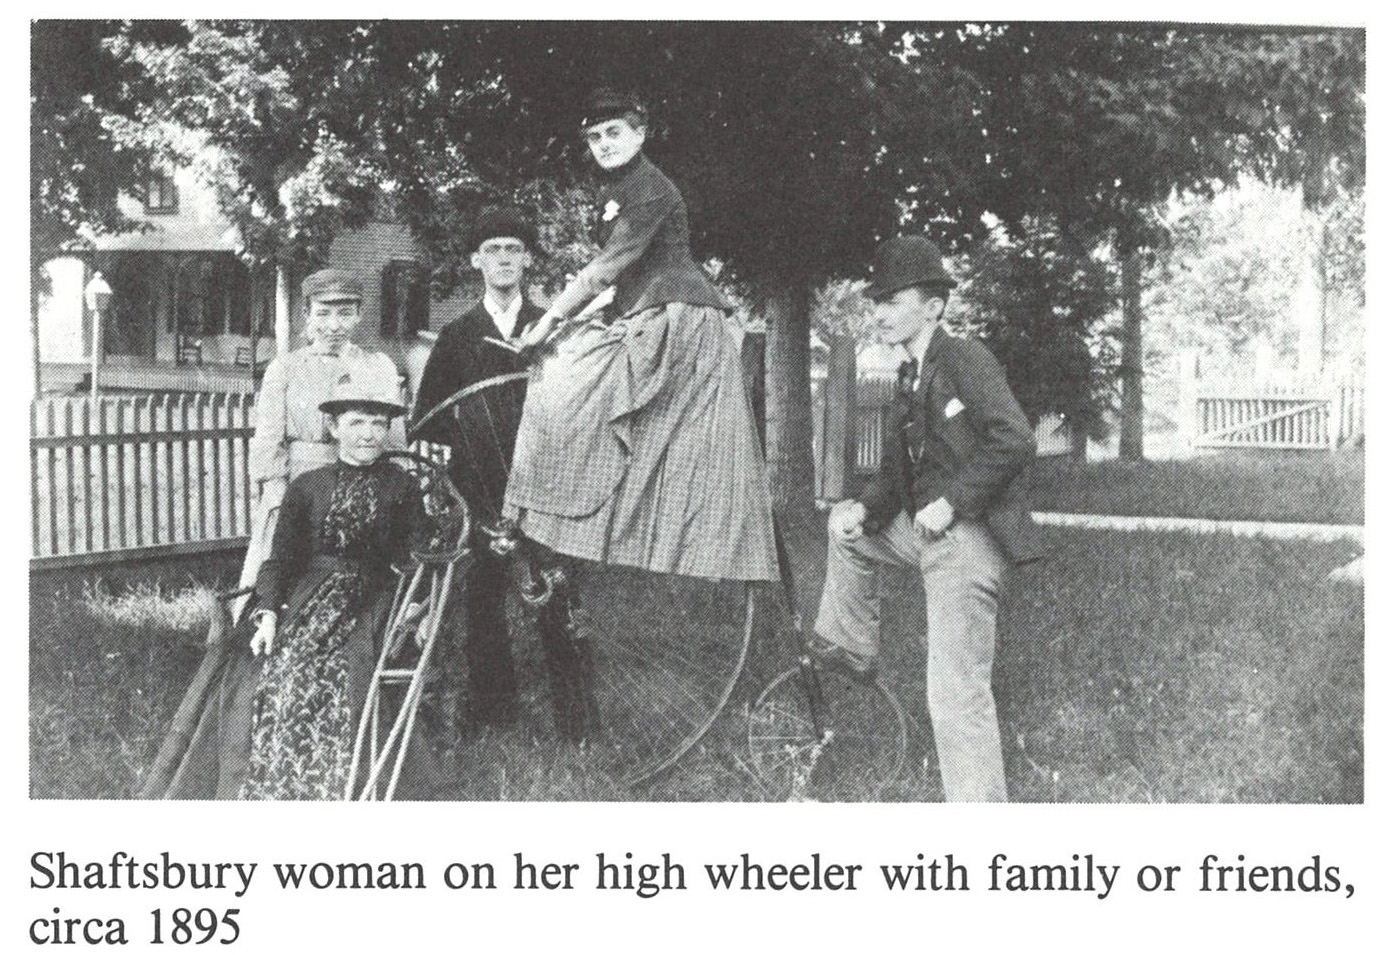 Historic photograph of a group of people, including a women riding a high-wheeler bicycle.